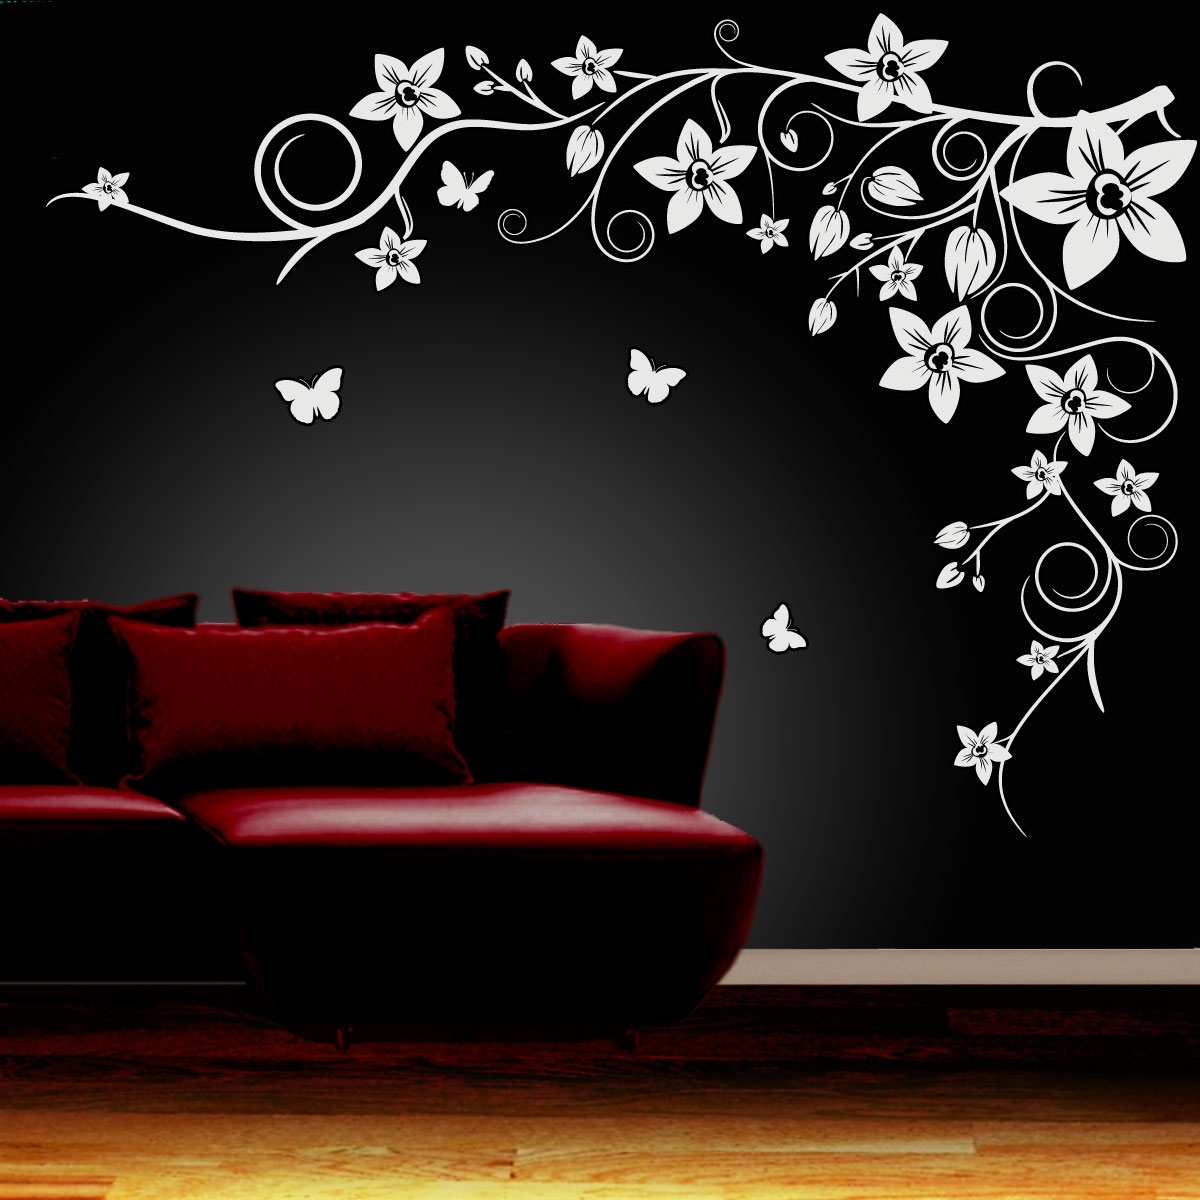 Wall Art Designs Intended For Most Up To Date Wall Art Ideas Design : Black Flower Wall Art Simple Themes (View 9 of 15)